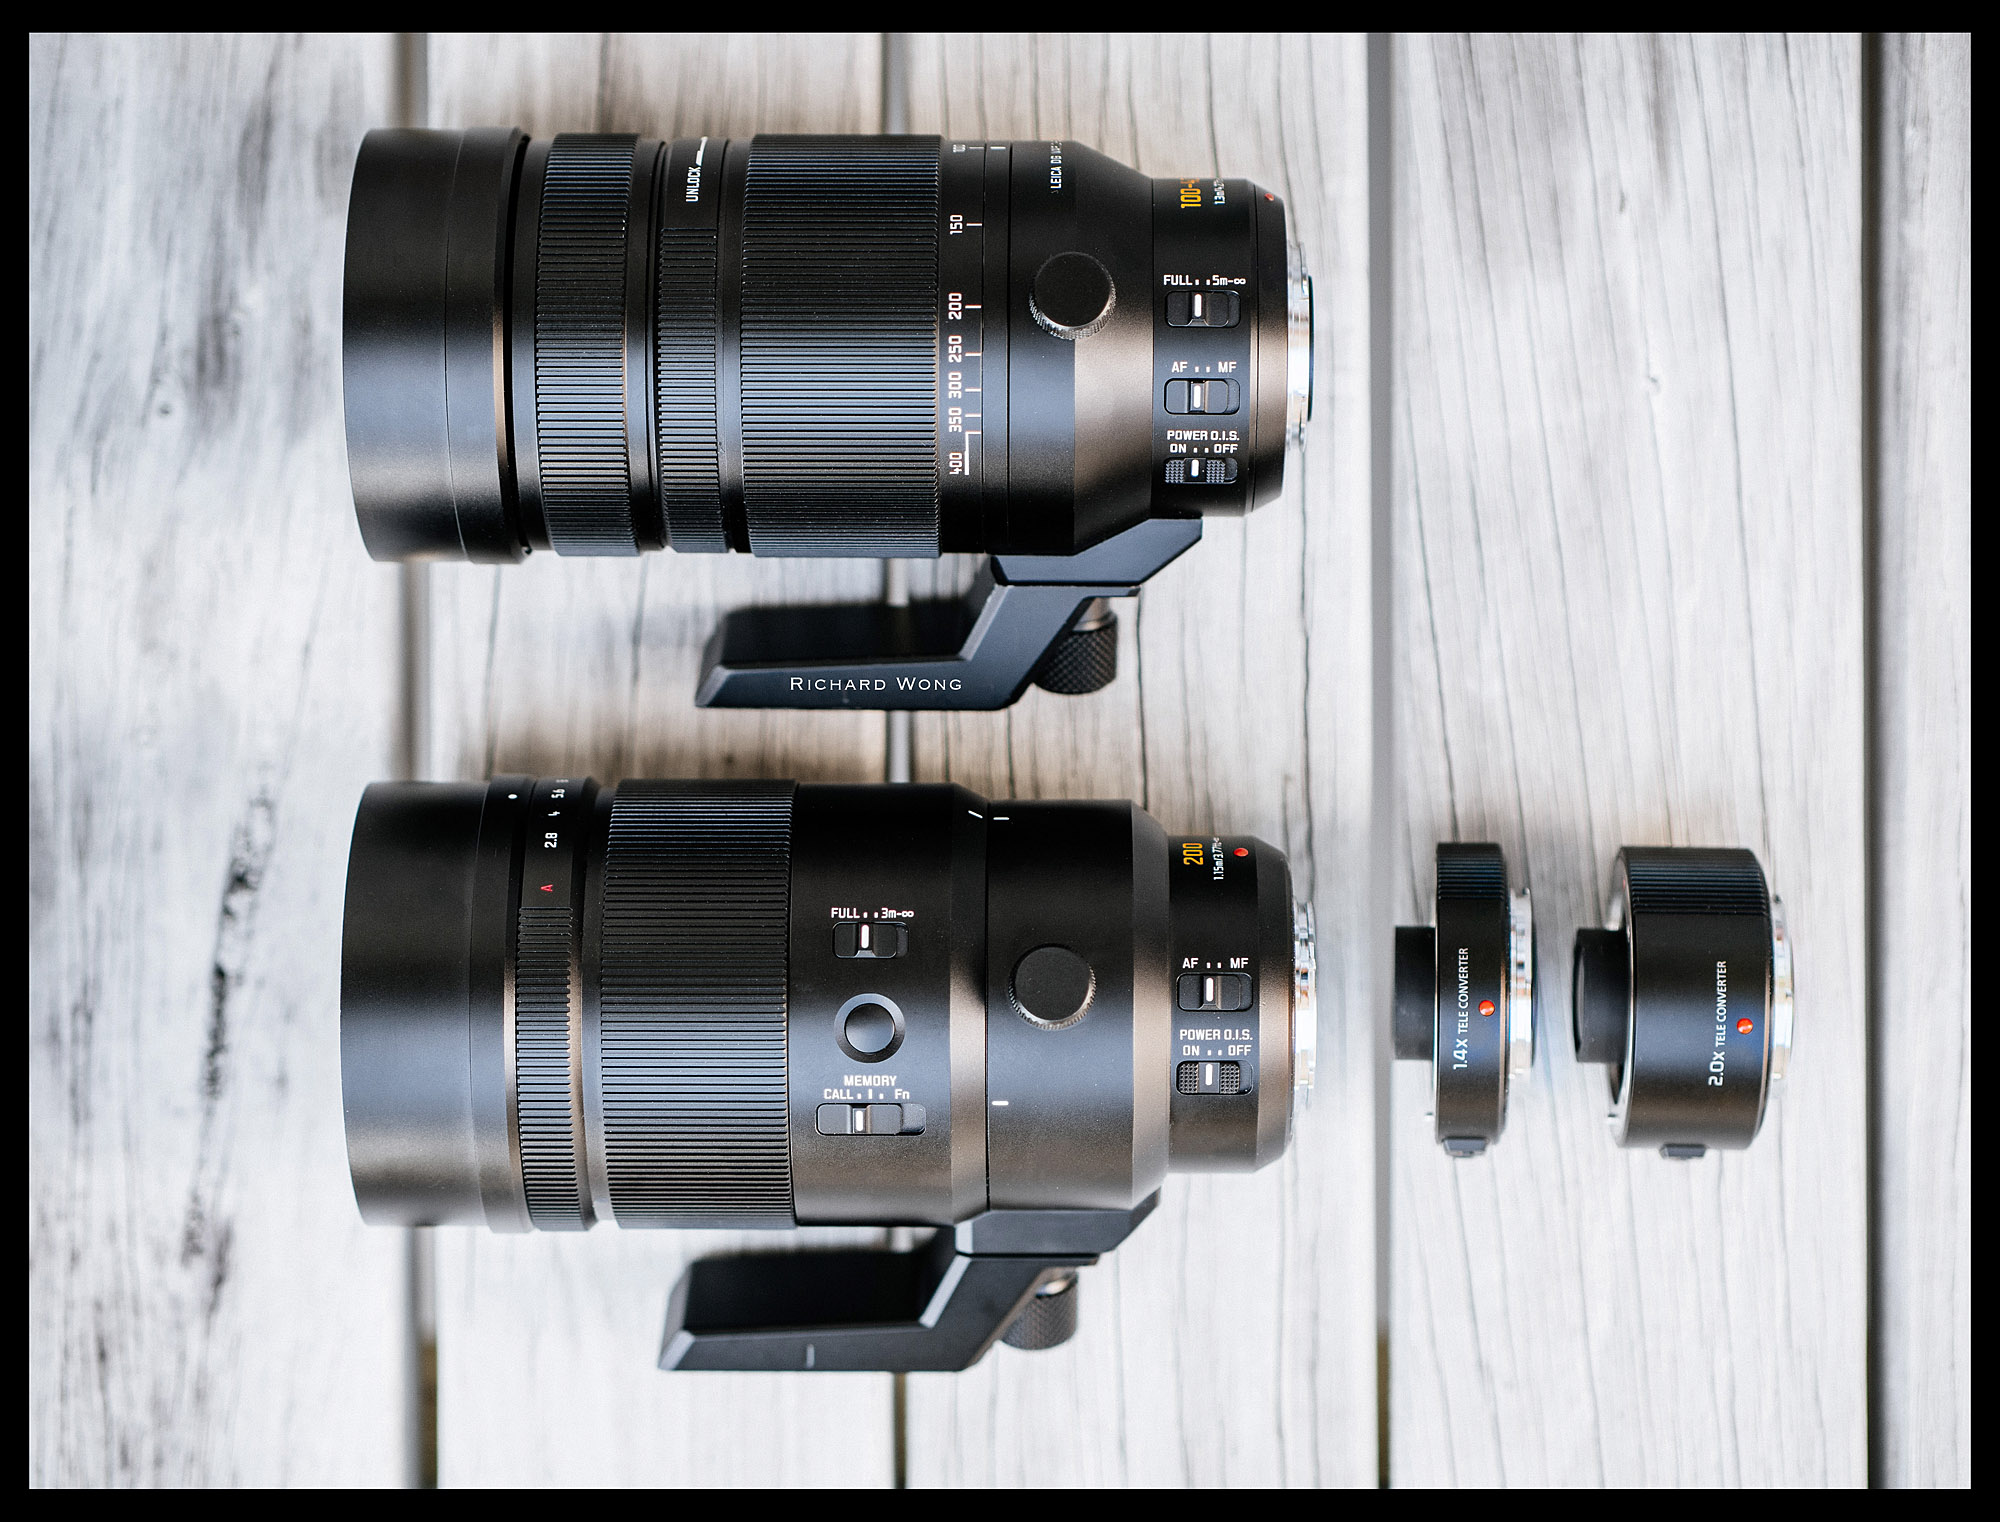 panasonic leica dg 100 400mm f 4 6 4 vs leica dg 200mm f 2 8 w tc review review by. Black Bedroom Furniture Sets. Home Design Ideas